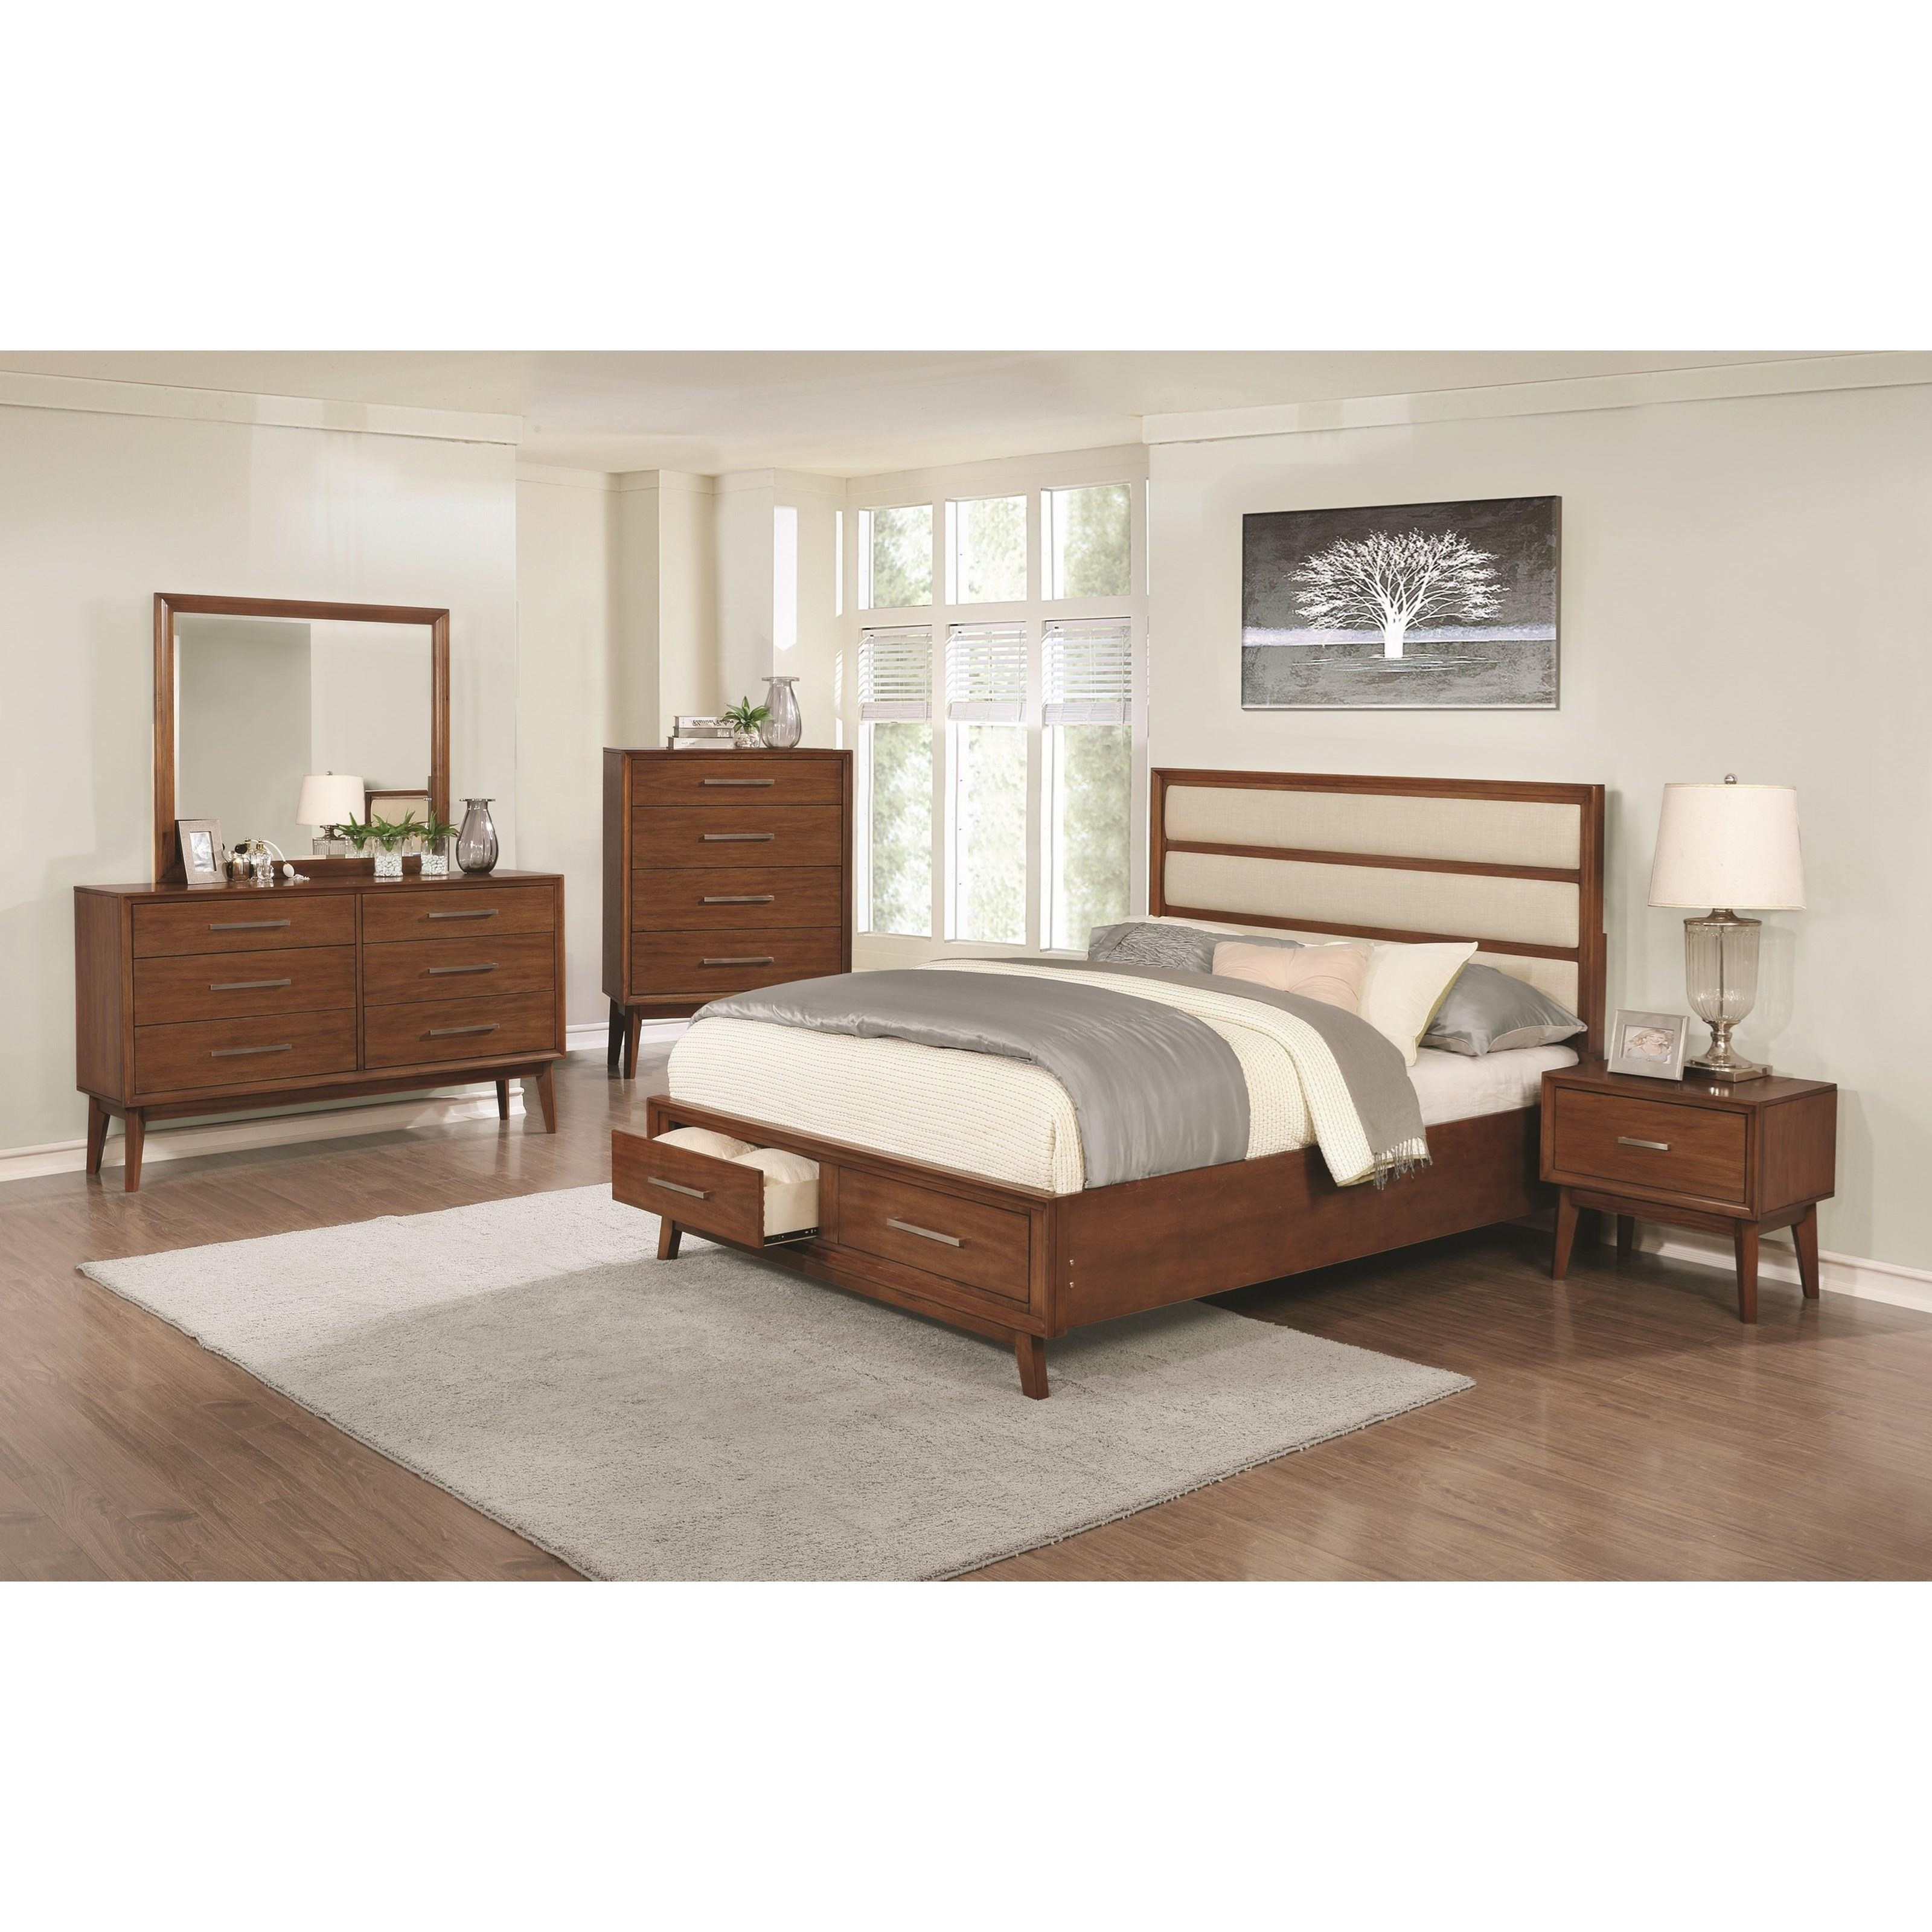 Banning upholstered panel queen bed with 2 footboard for Queen upholstered bed with drawers